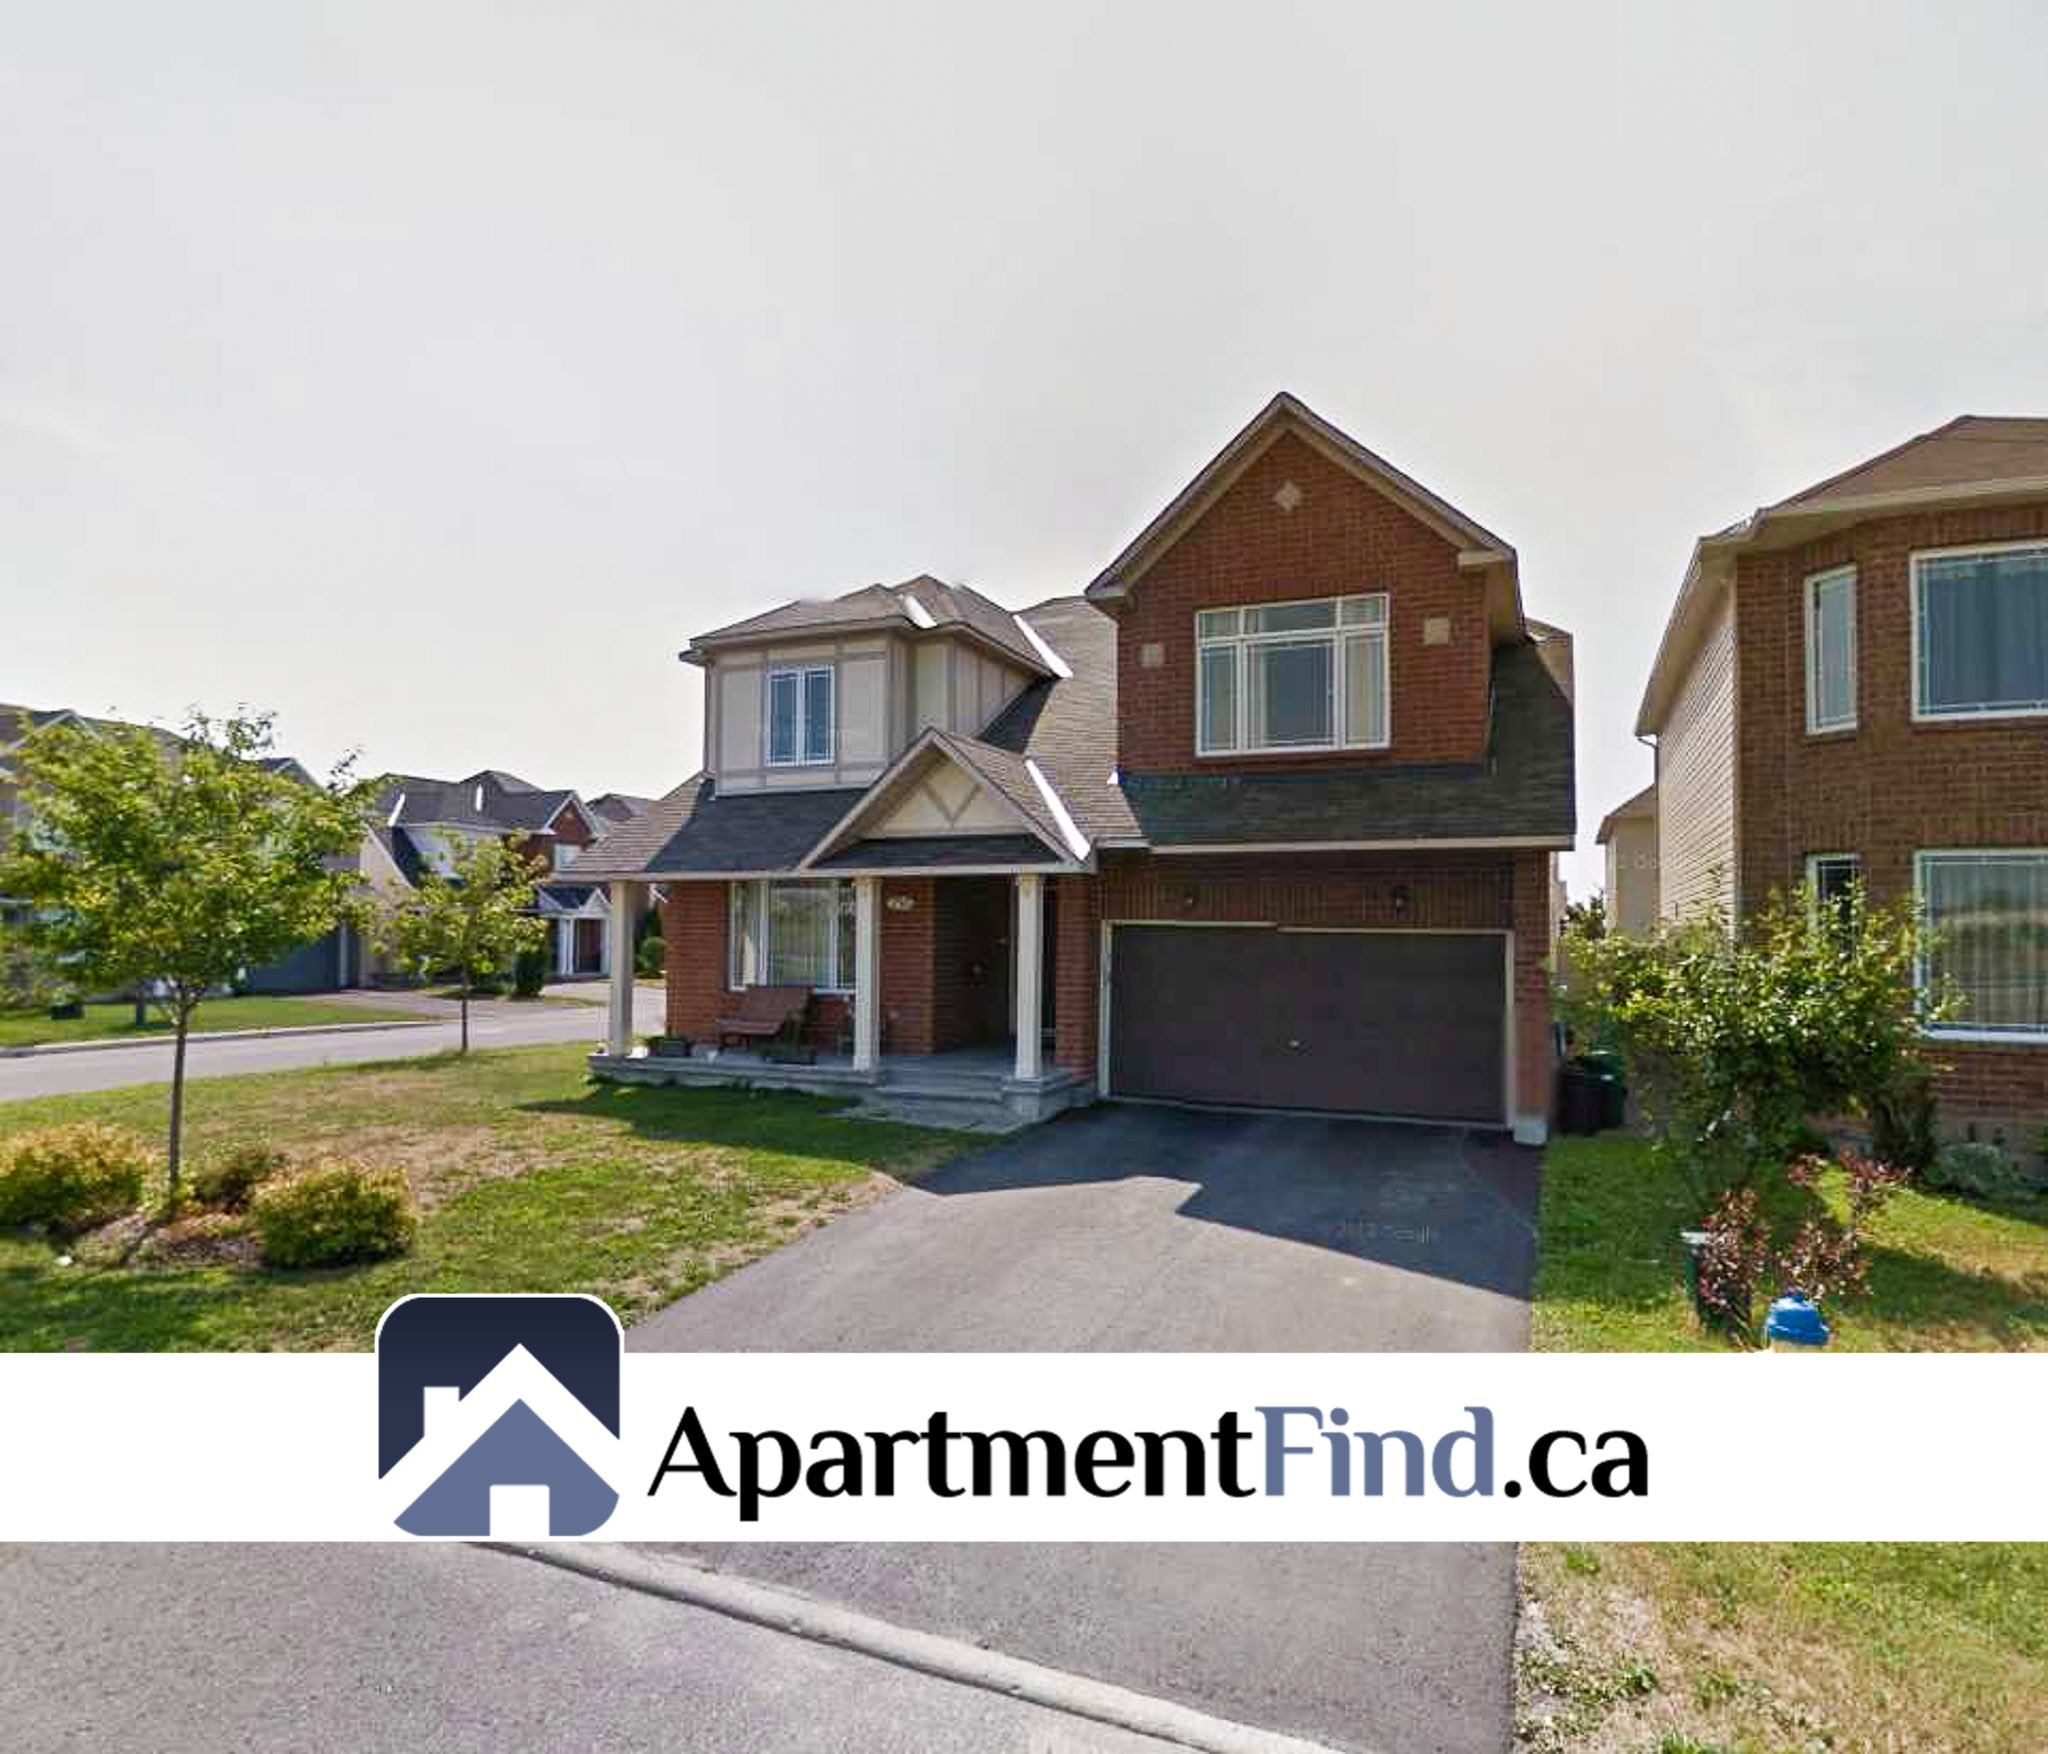 Northwinds Apartments: 256 Northwind Street (Orleans)